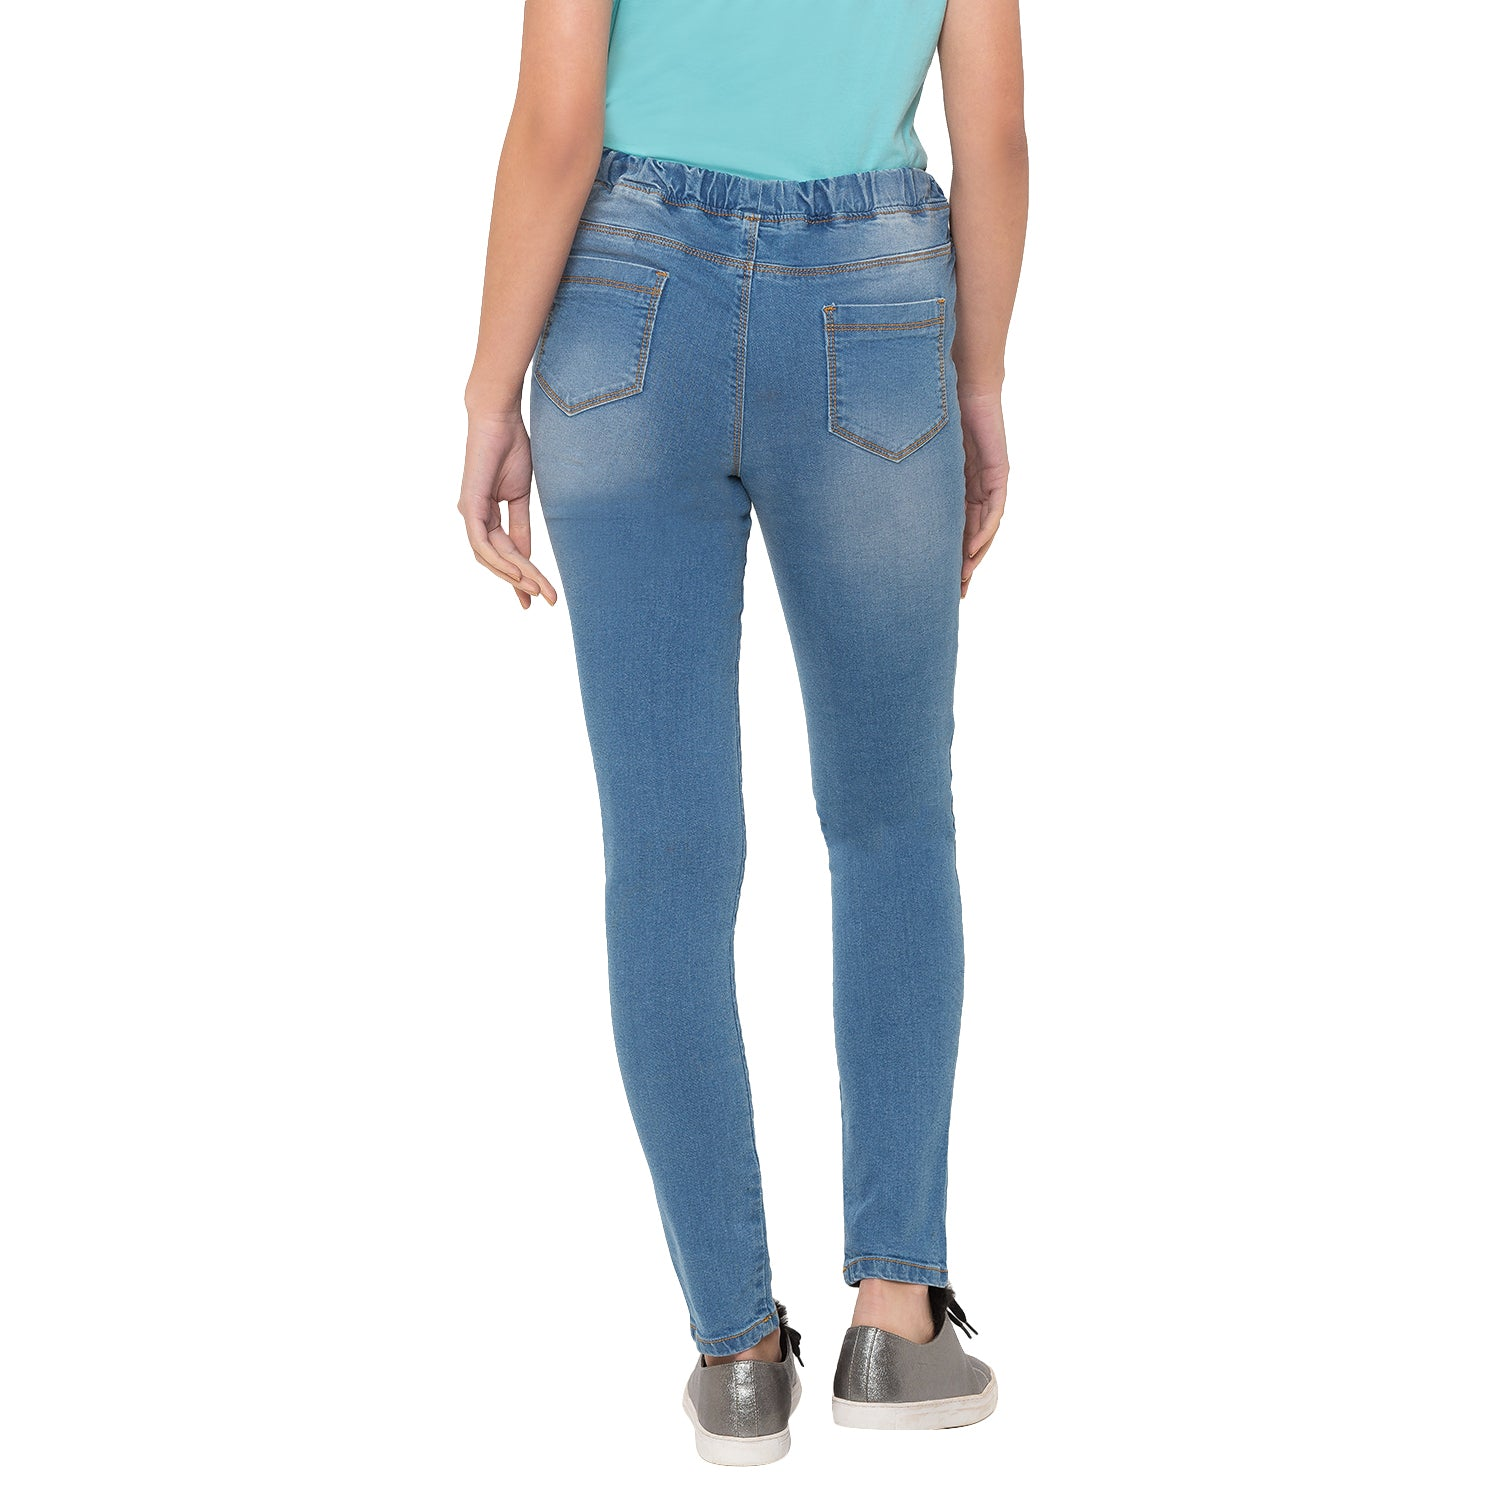 Globus Blue Ripped Jeans-3